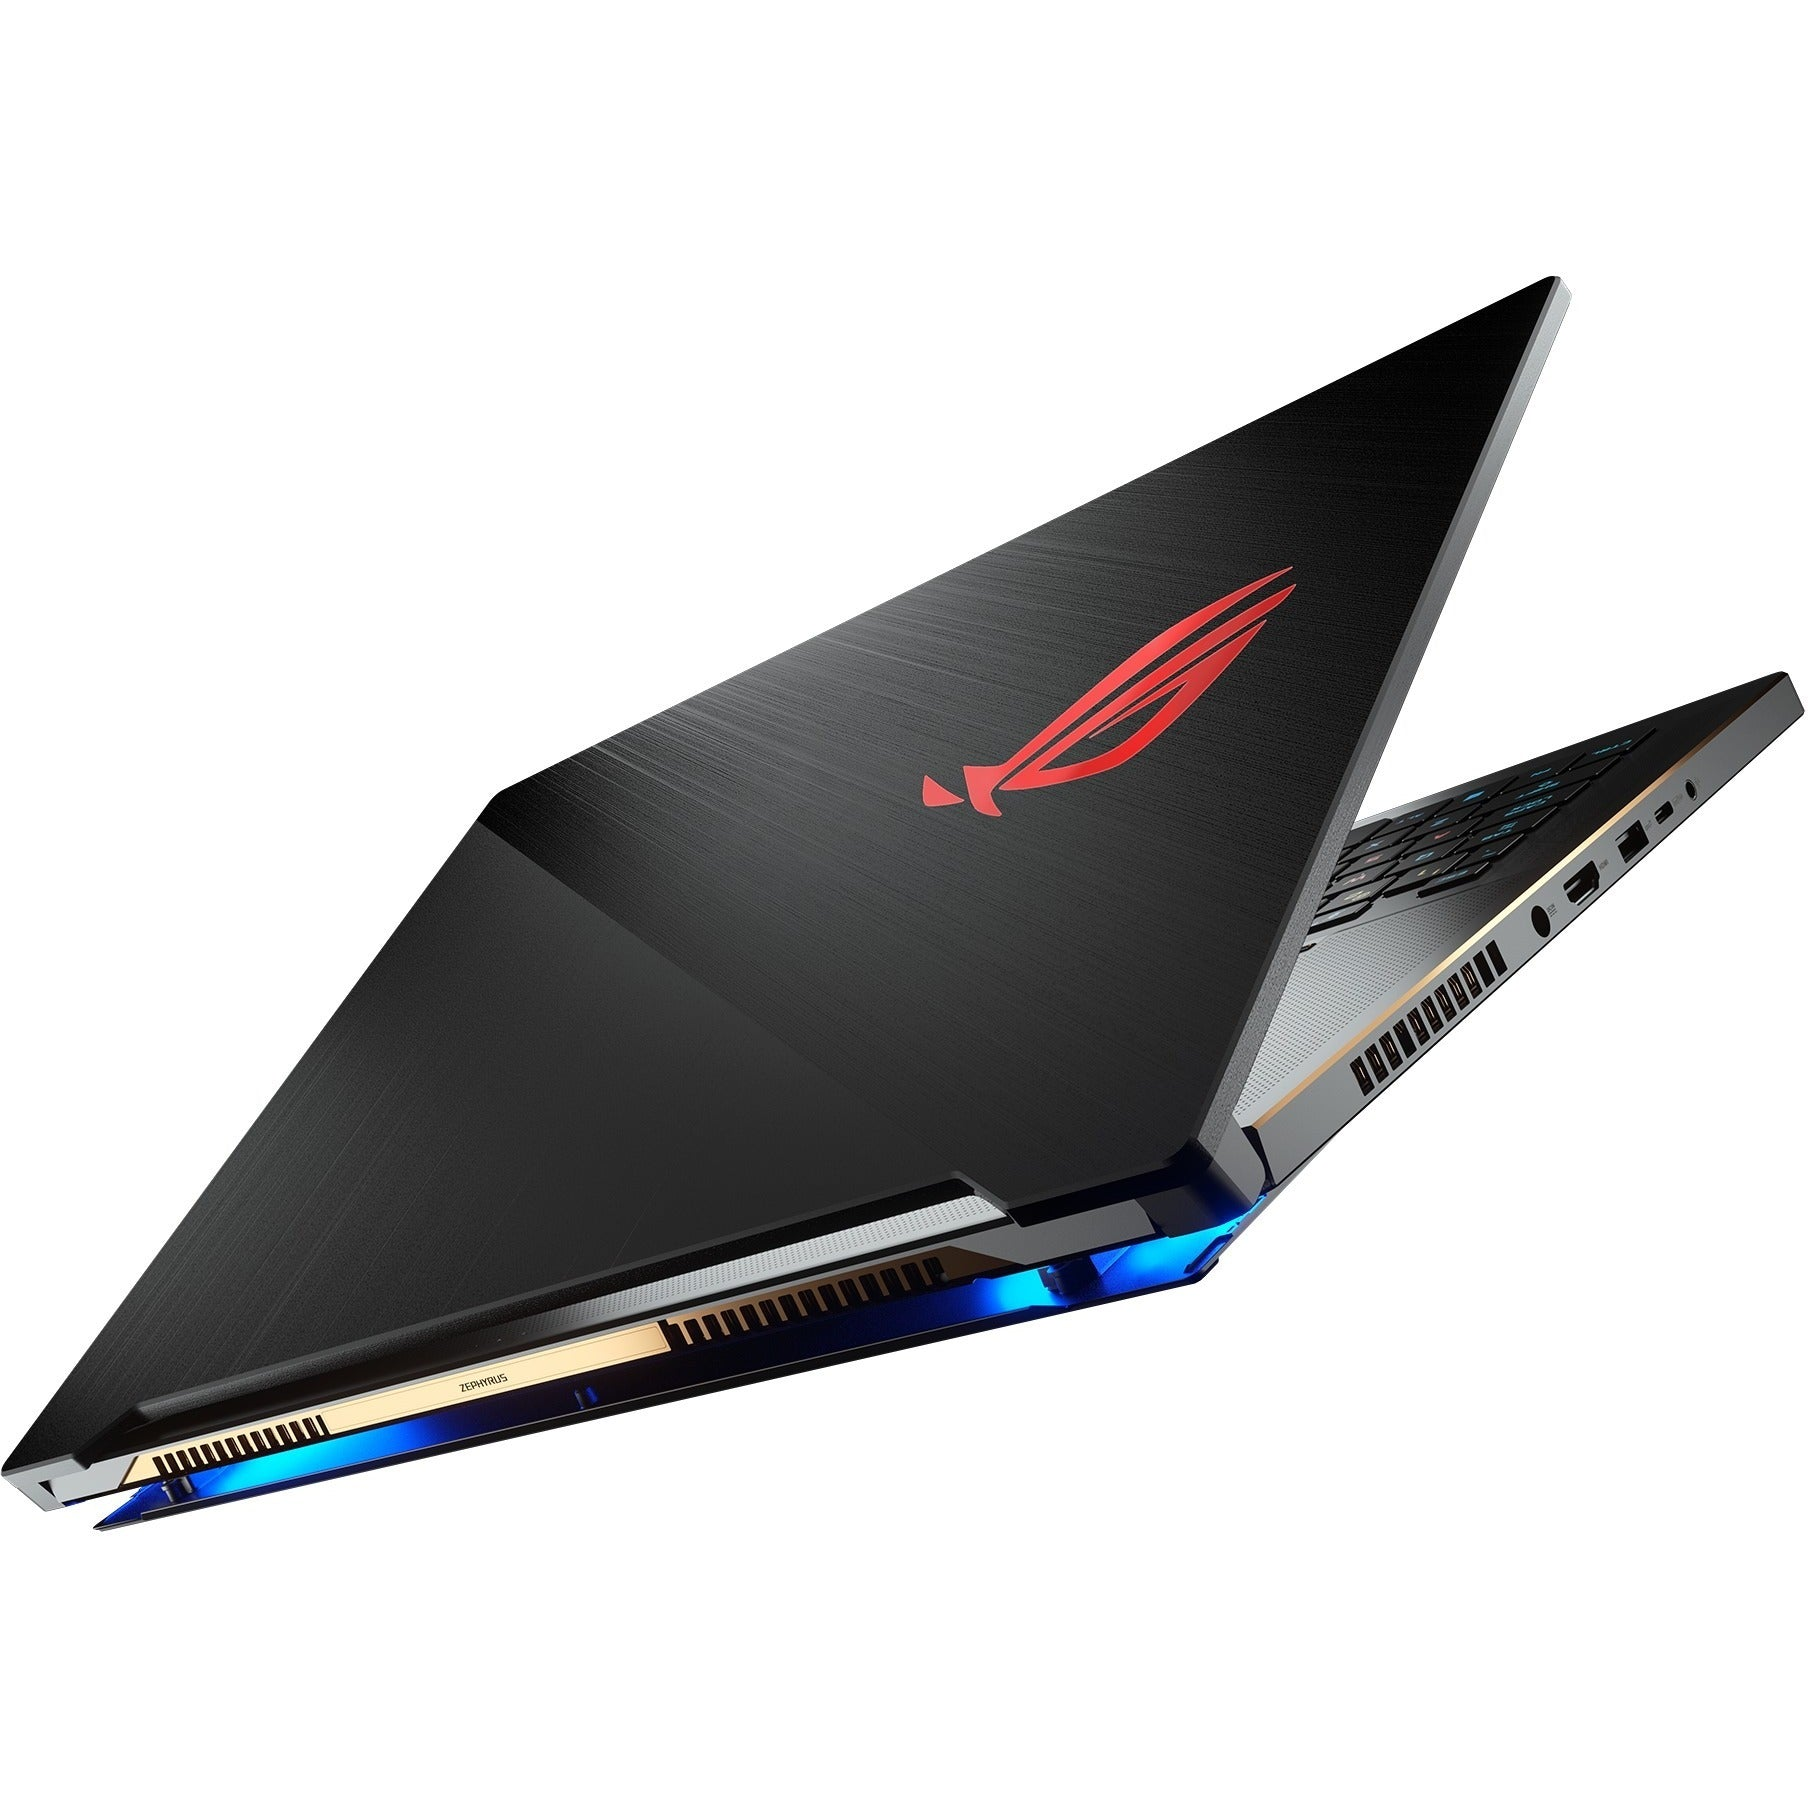 "Asus Notebook Gaming Machine 17.3"" i7-9750H 16GB 1TB Win10"